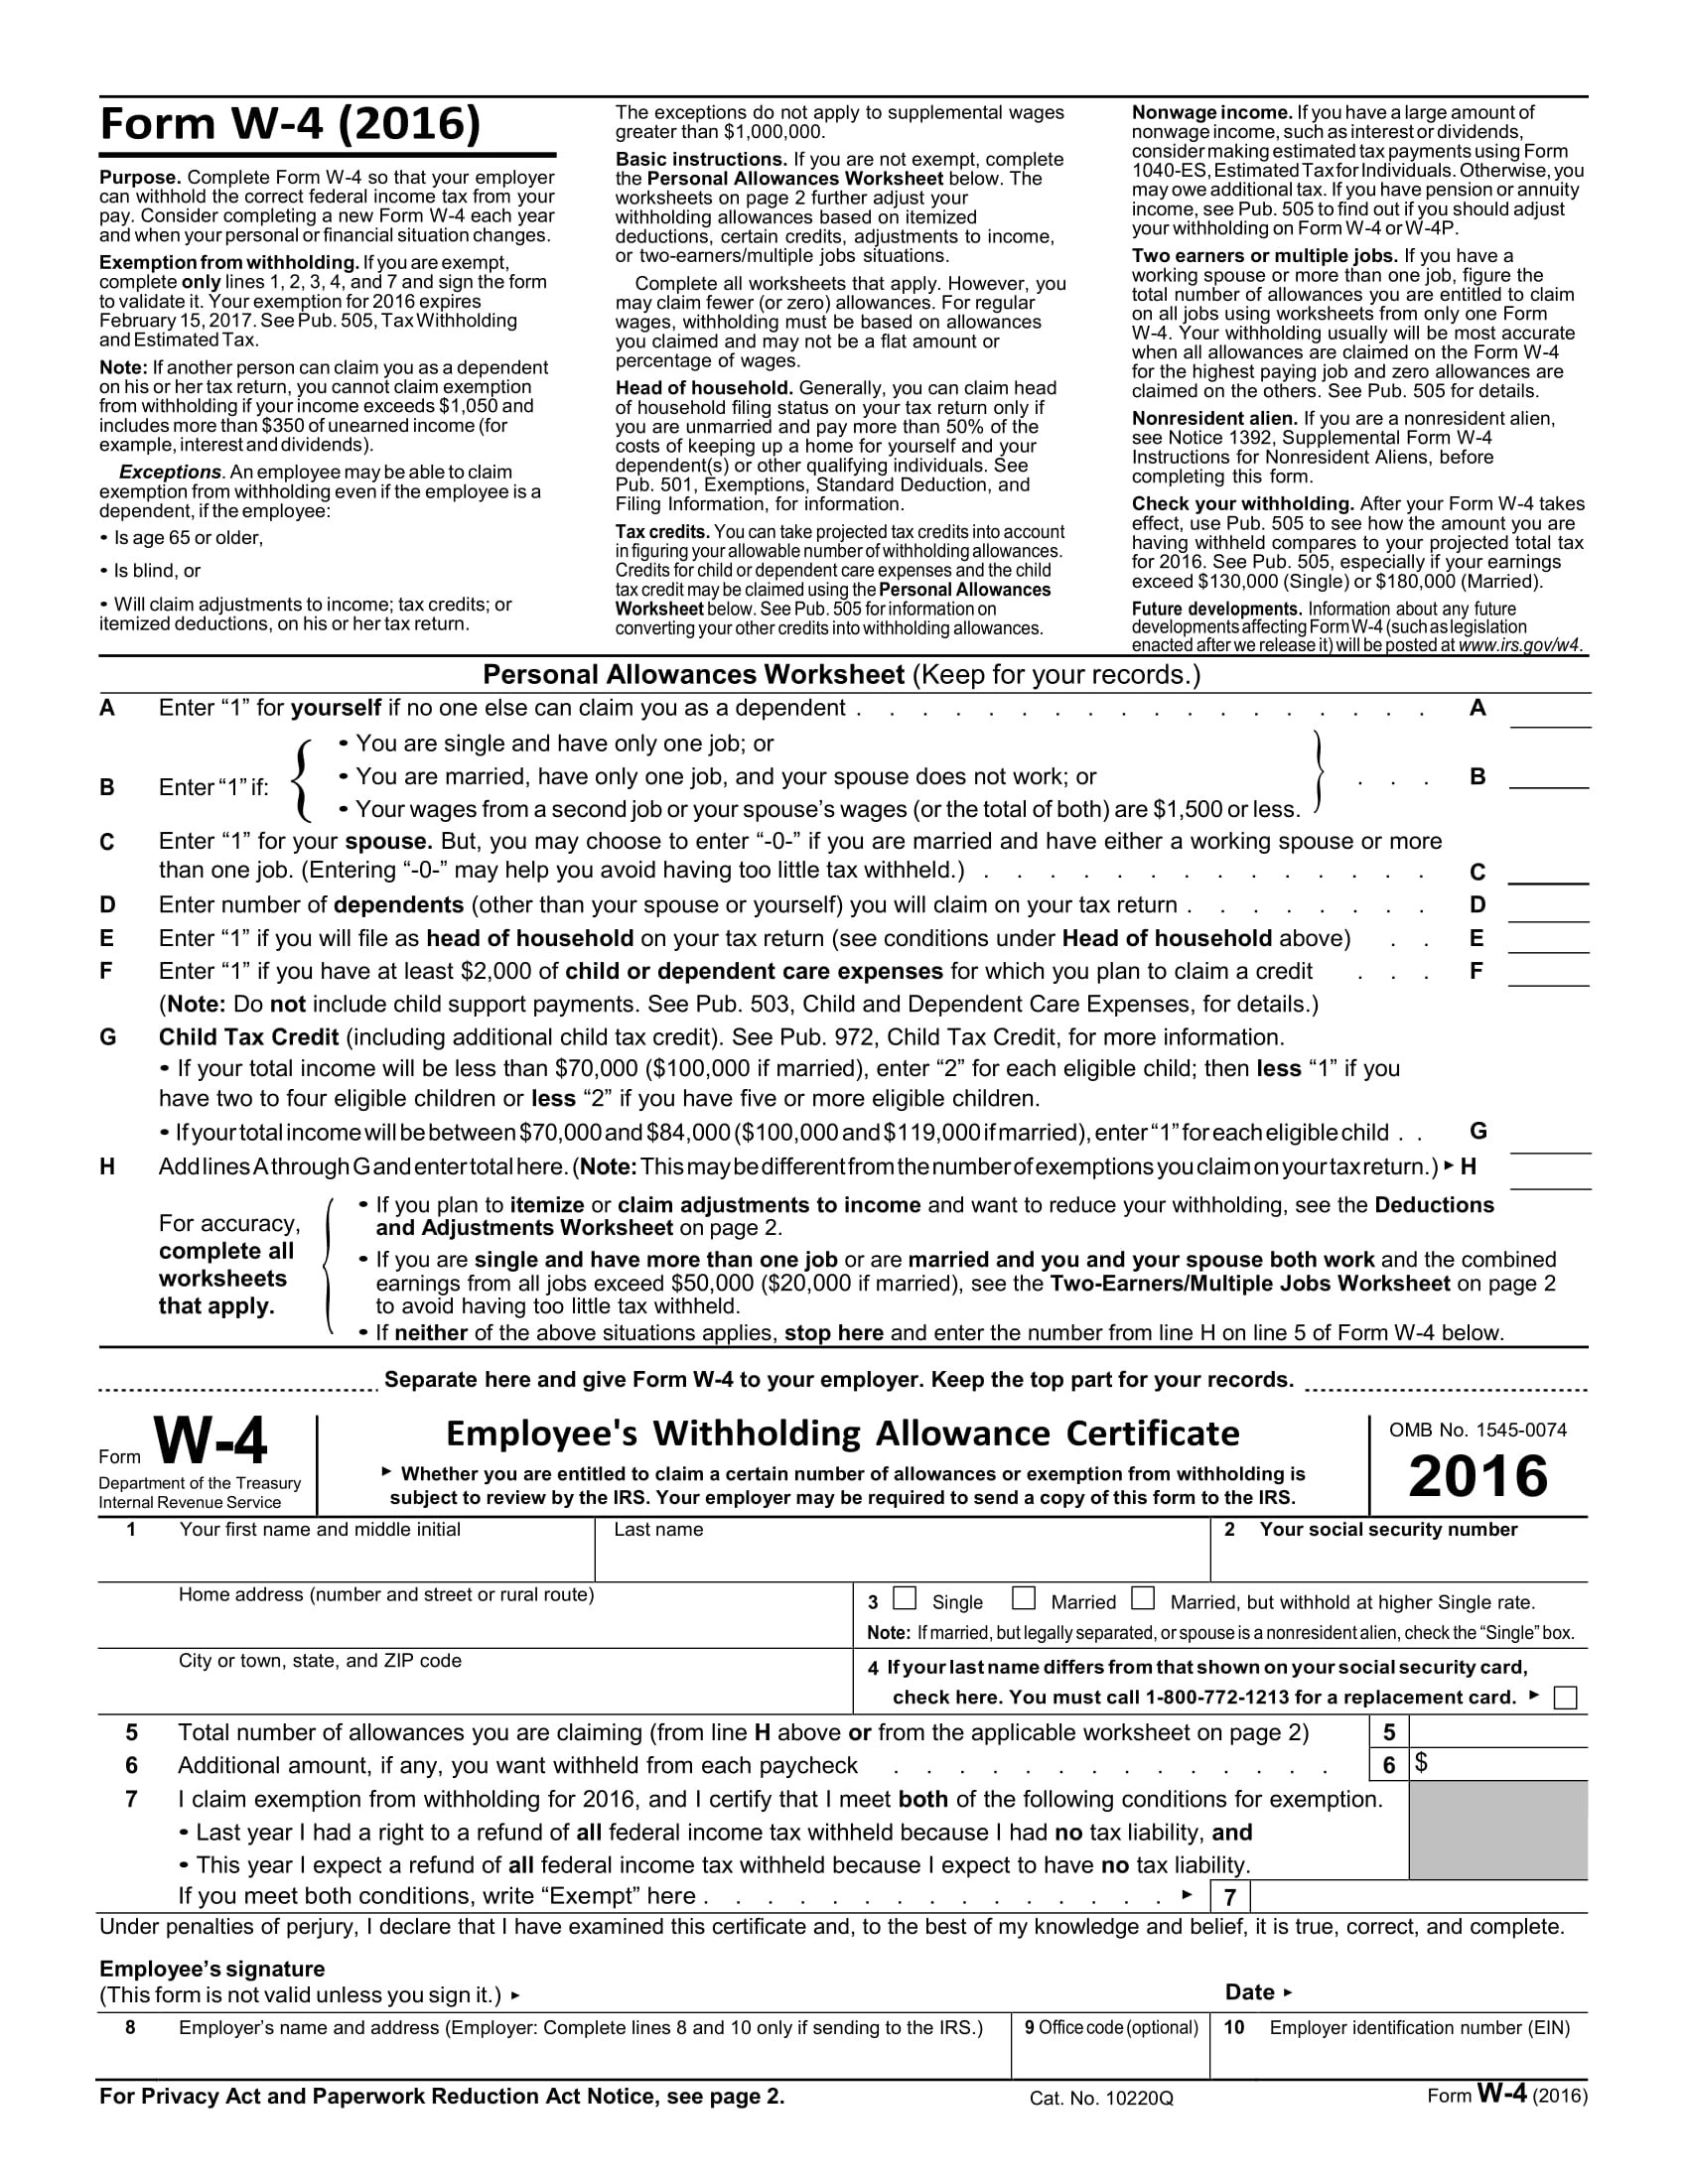 10 Varieties Of Tax Forms For Employers And Taxpayers